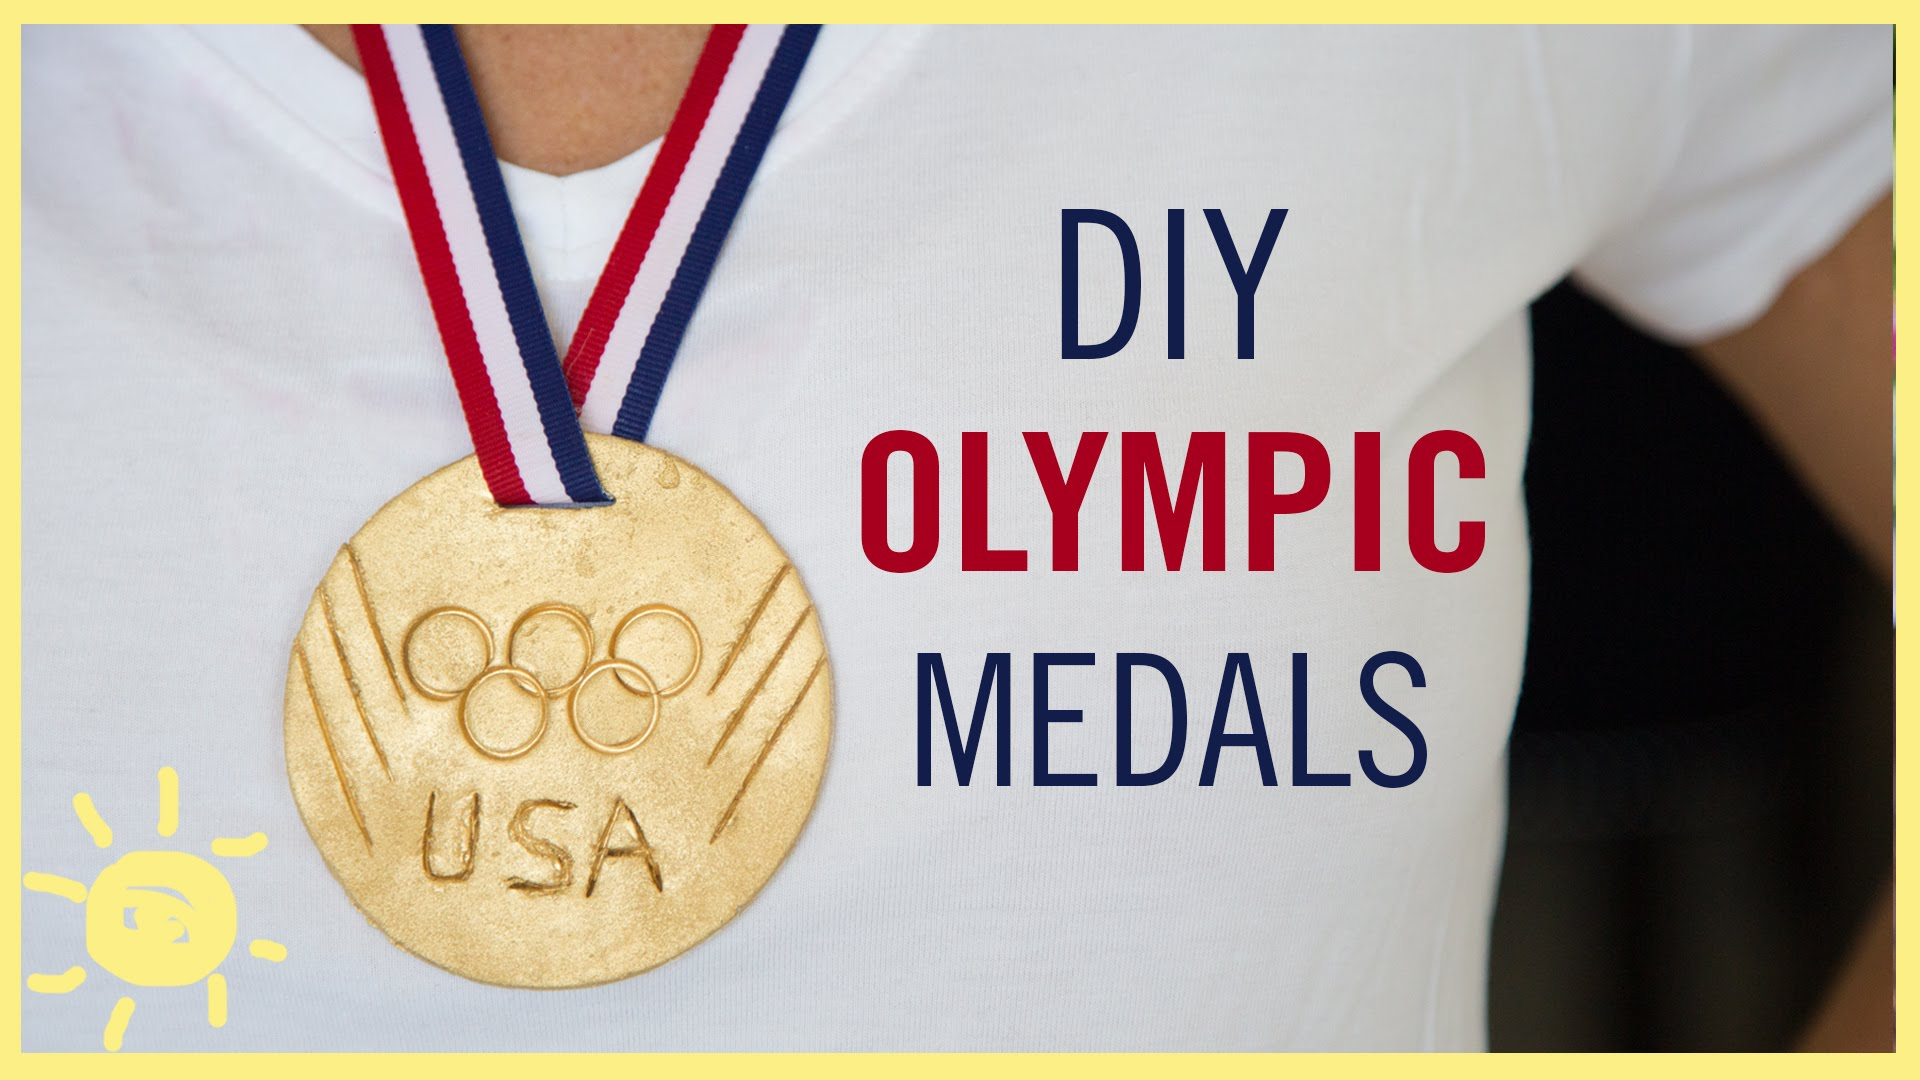 1920x1080 - Olympic Gold Metal Wallpapers 9